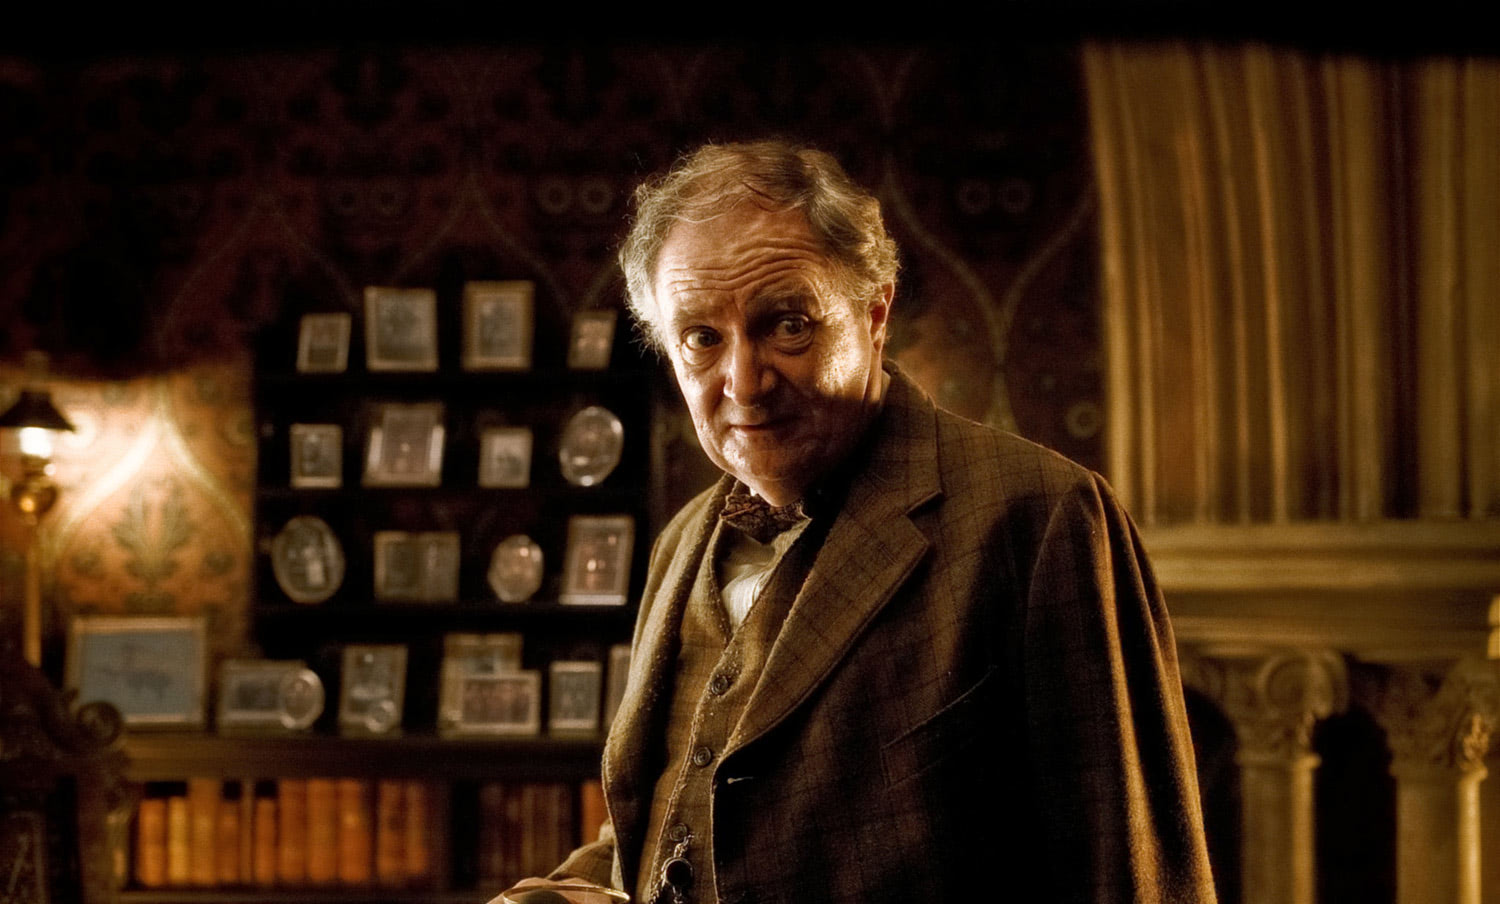 Horace Slughorn in his office